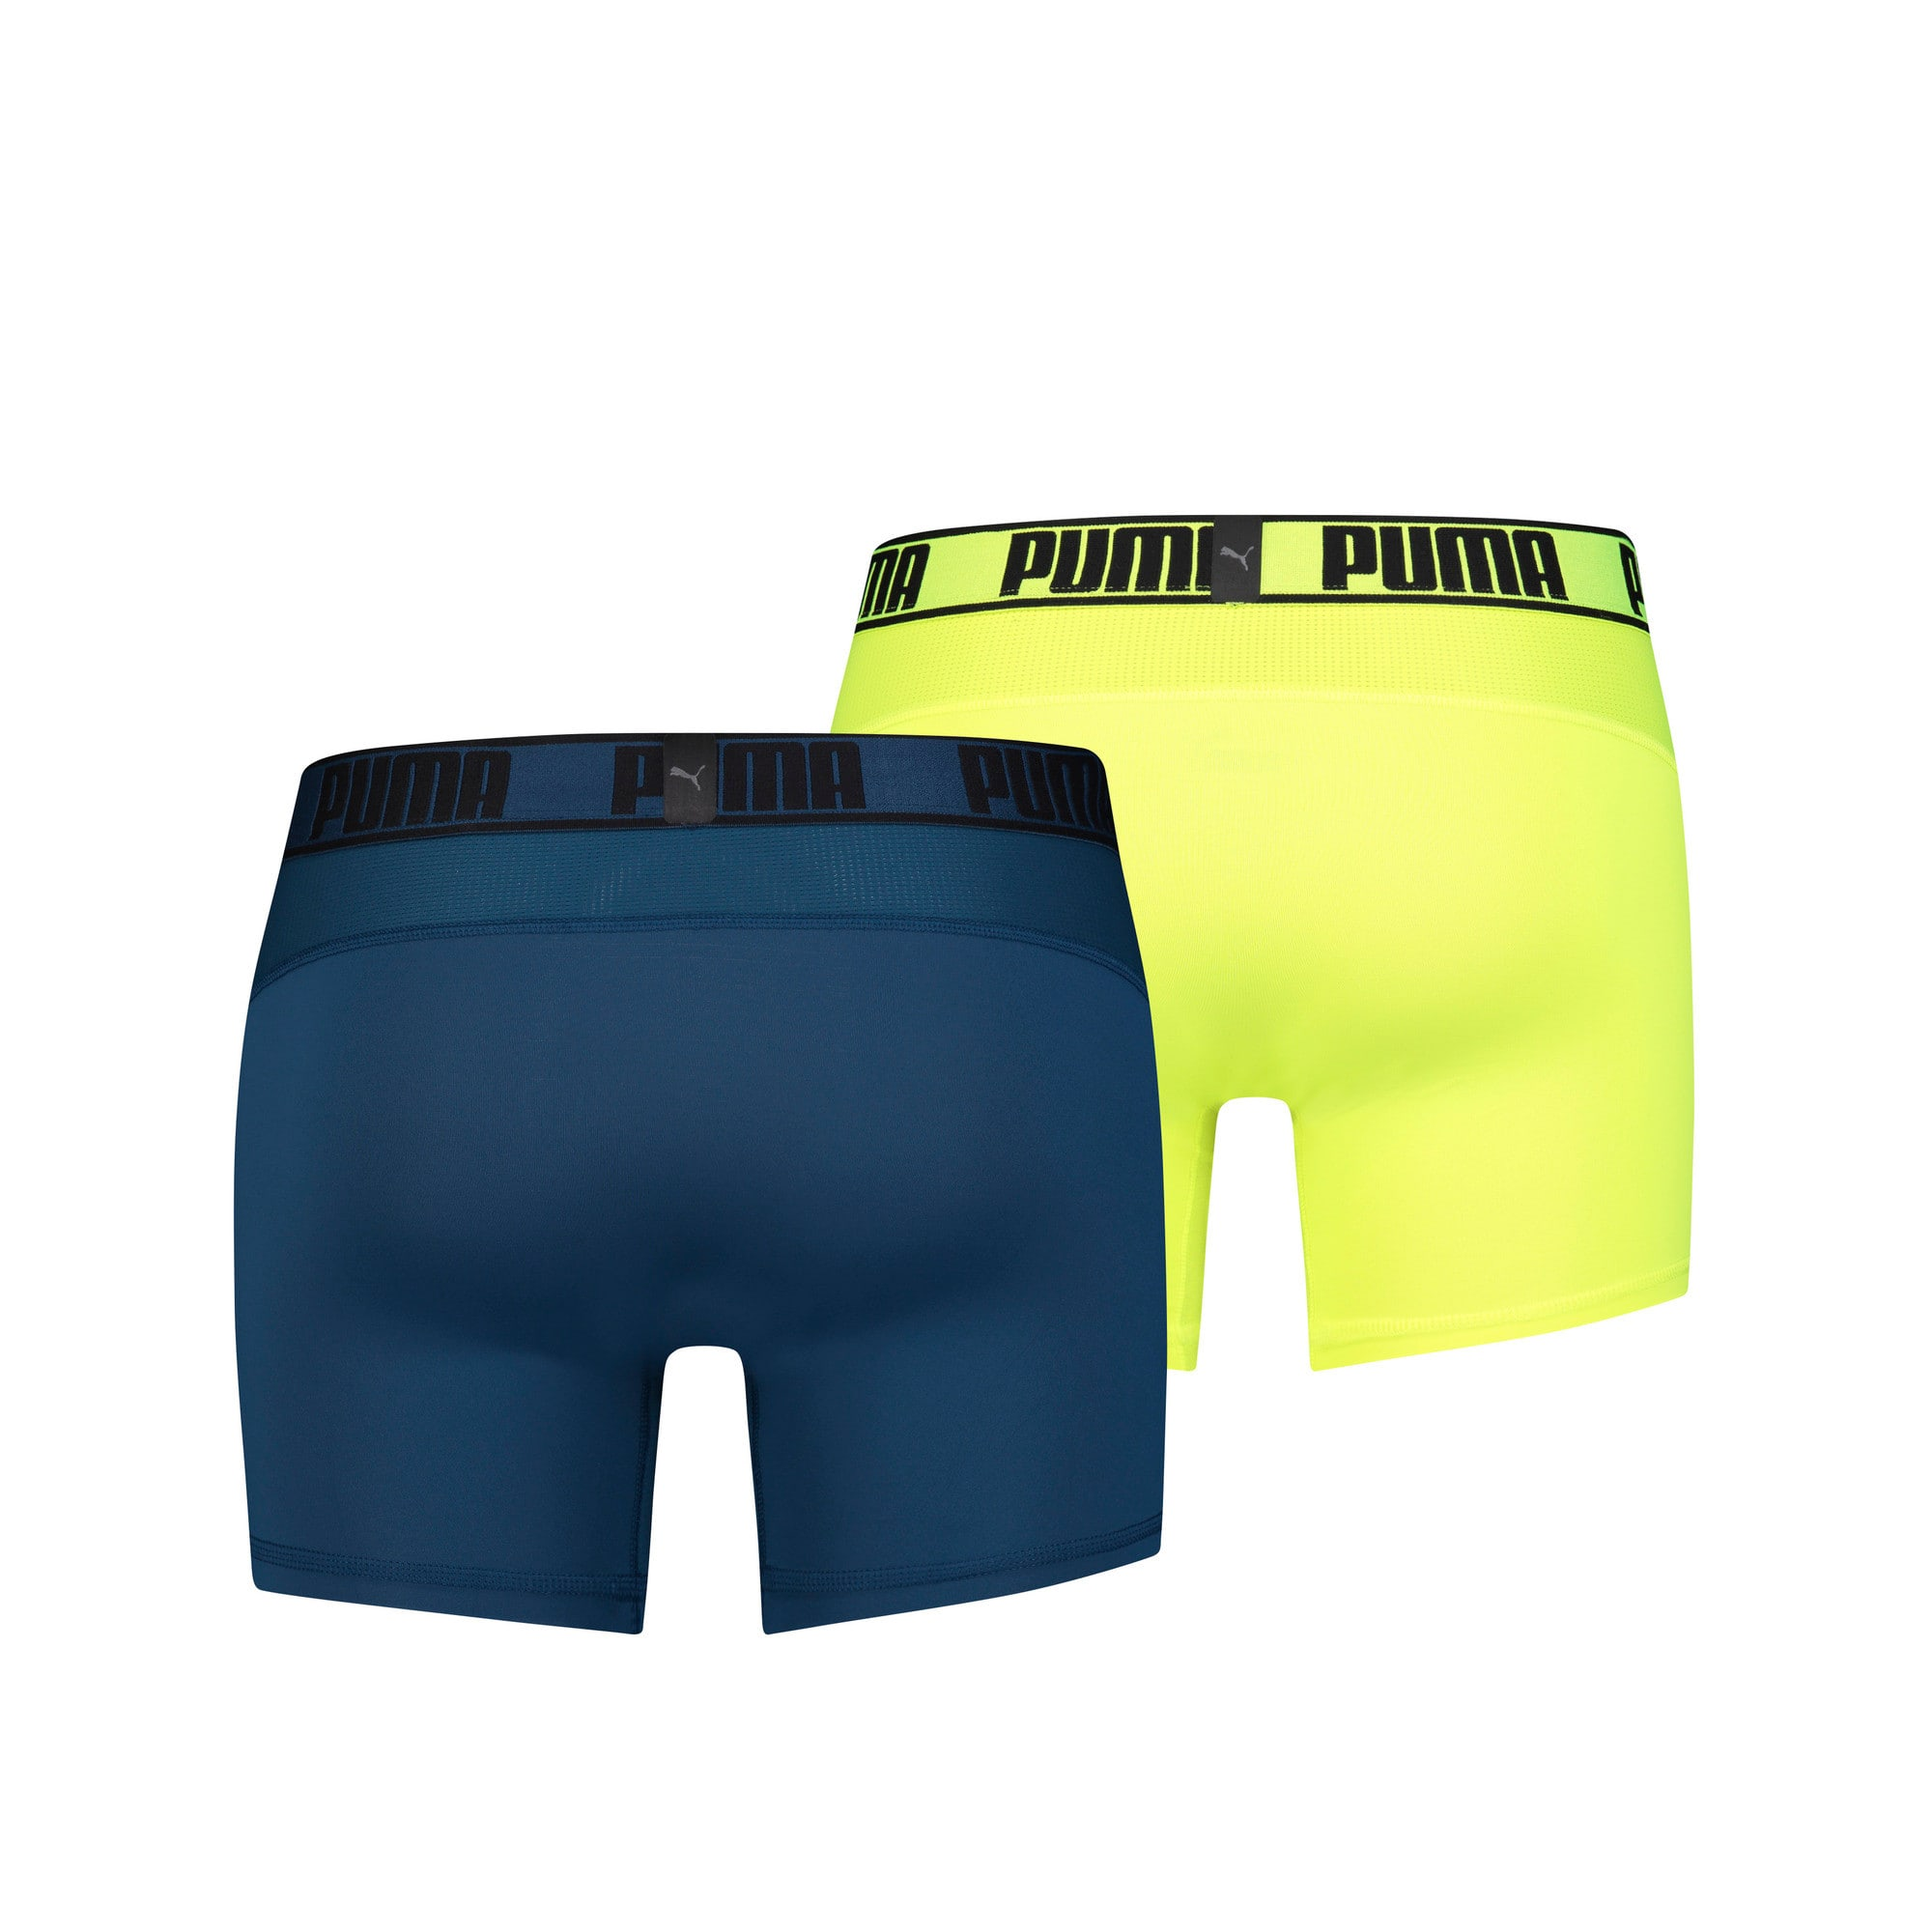 Active Men's Boxer Shorts 2 Pack, sea green / yellow, large